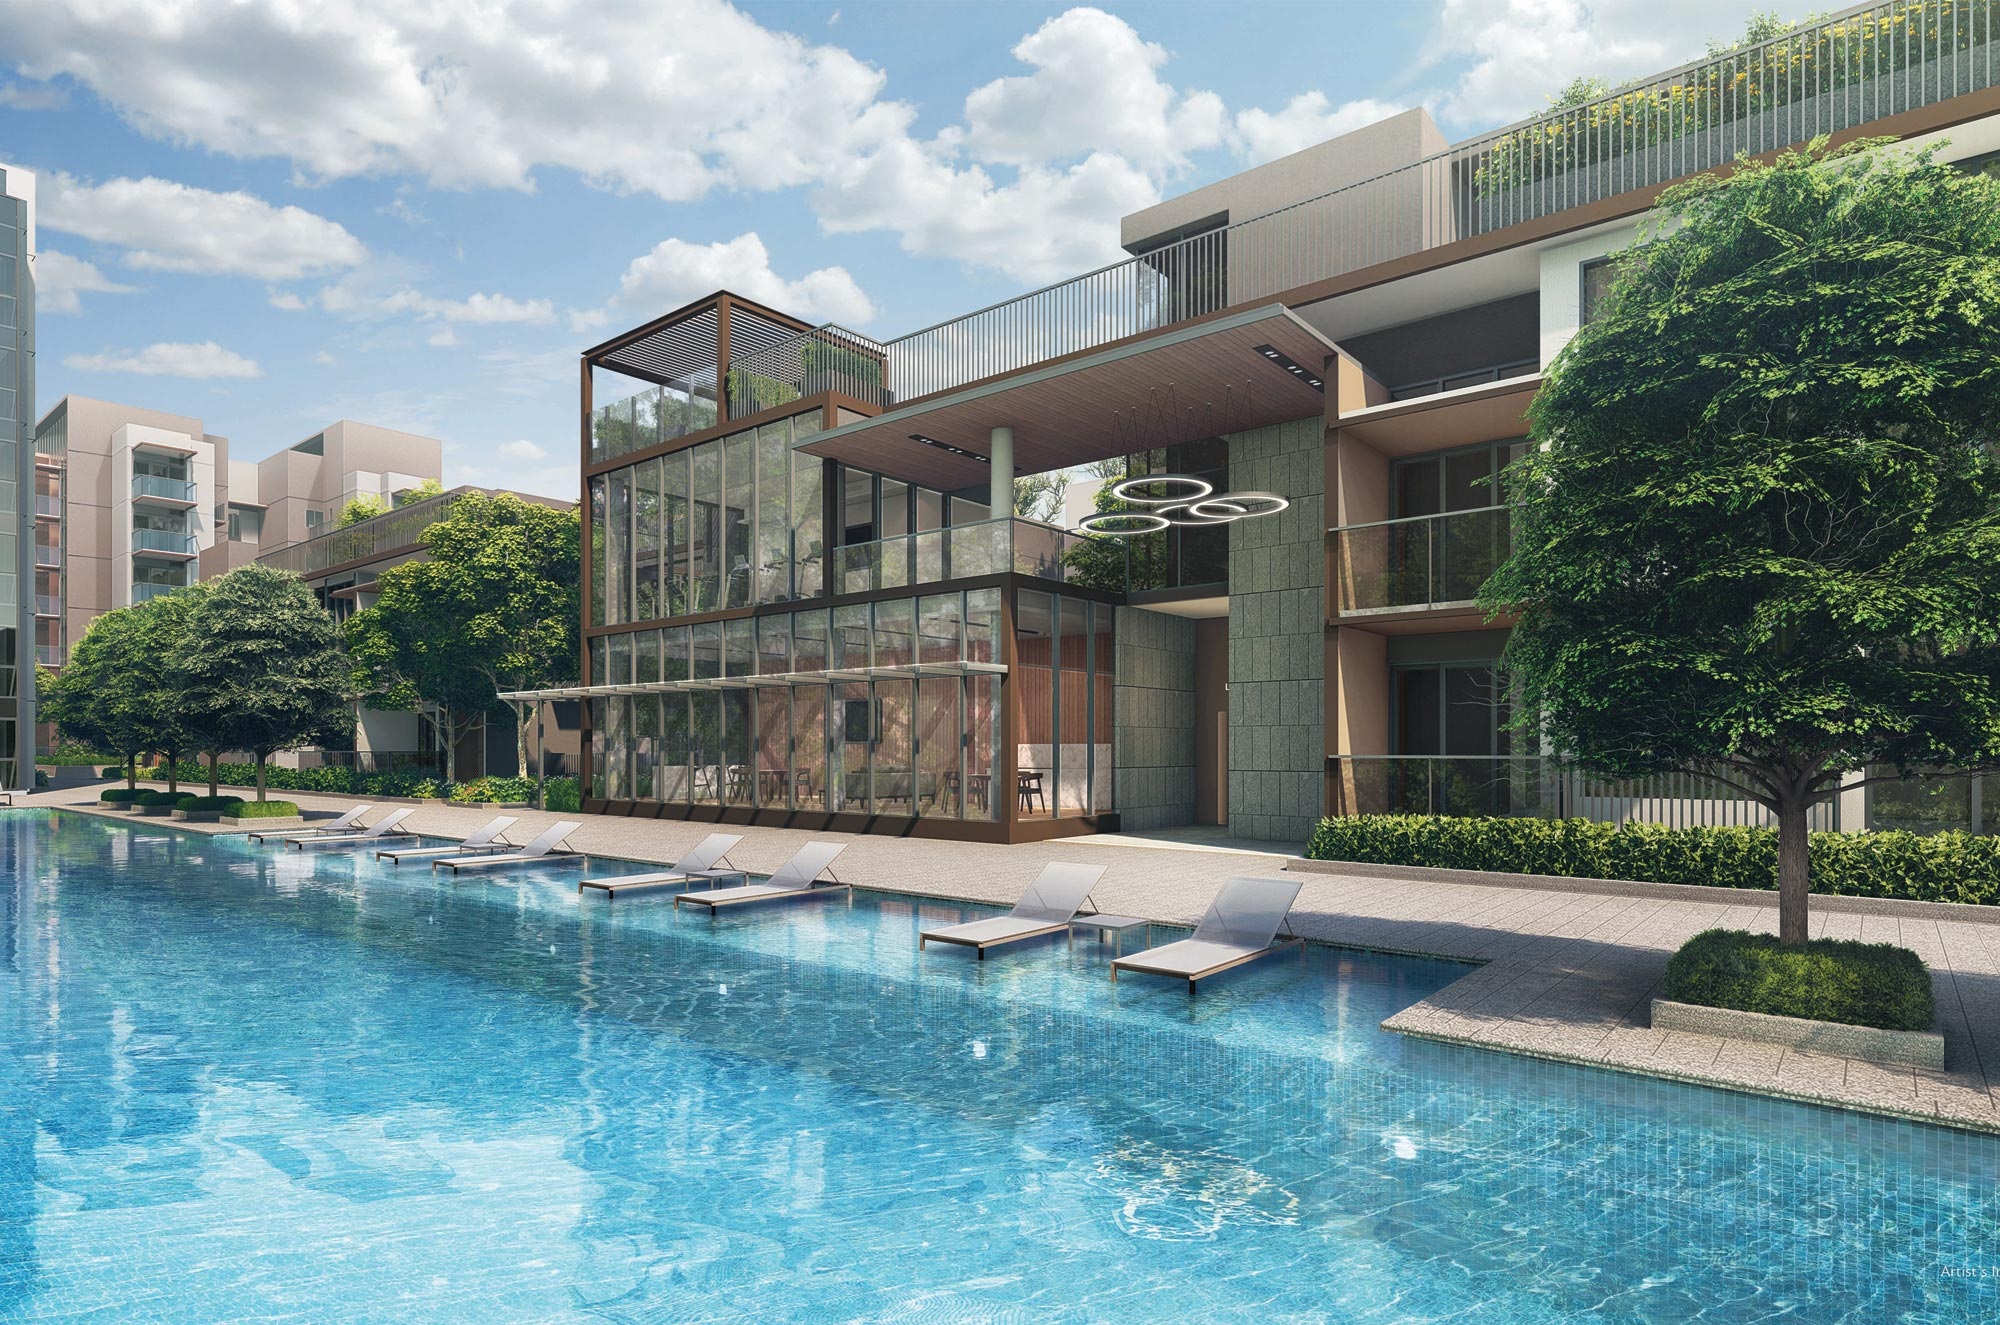 FOURTH AVENUE RESIDENCES | SHOWFLAT HOTLINE: (+65) 6100-0368 | SMS & WHATSAPP HOTLINE: (+65) 9648-1730